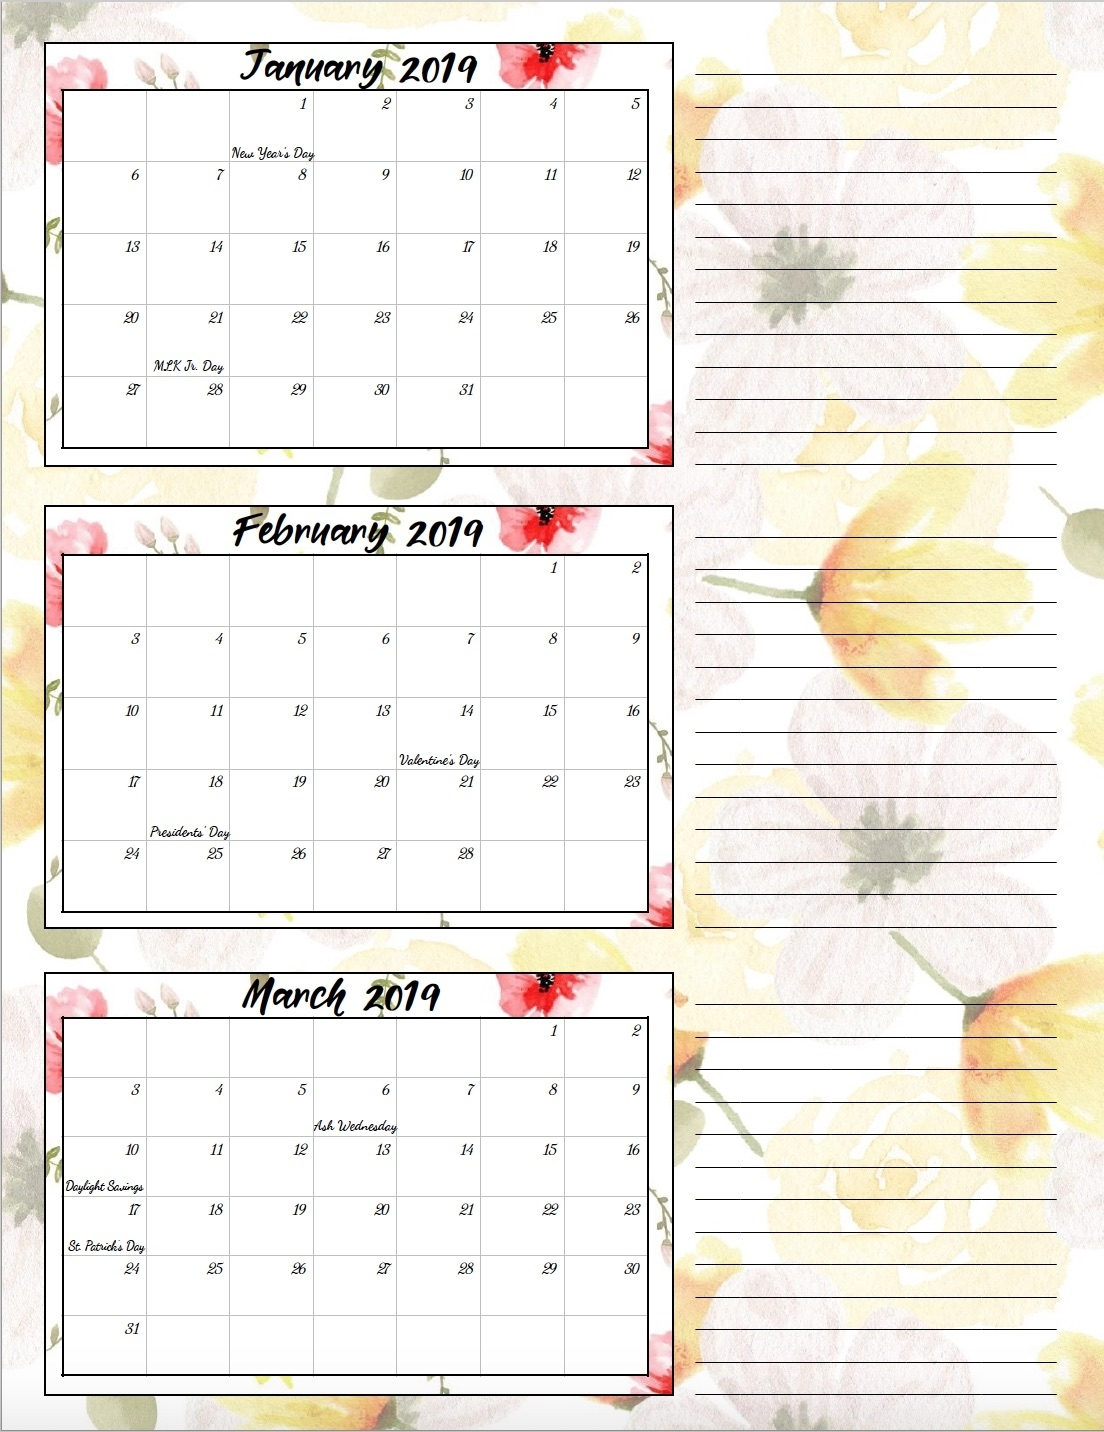 Free Printable 2019 Quarterly Calendars With Holidays: 3 Designs